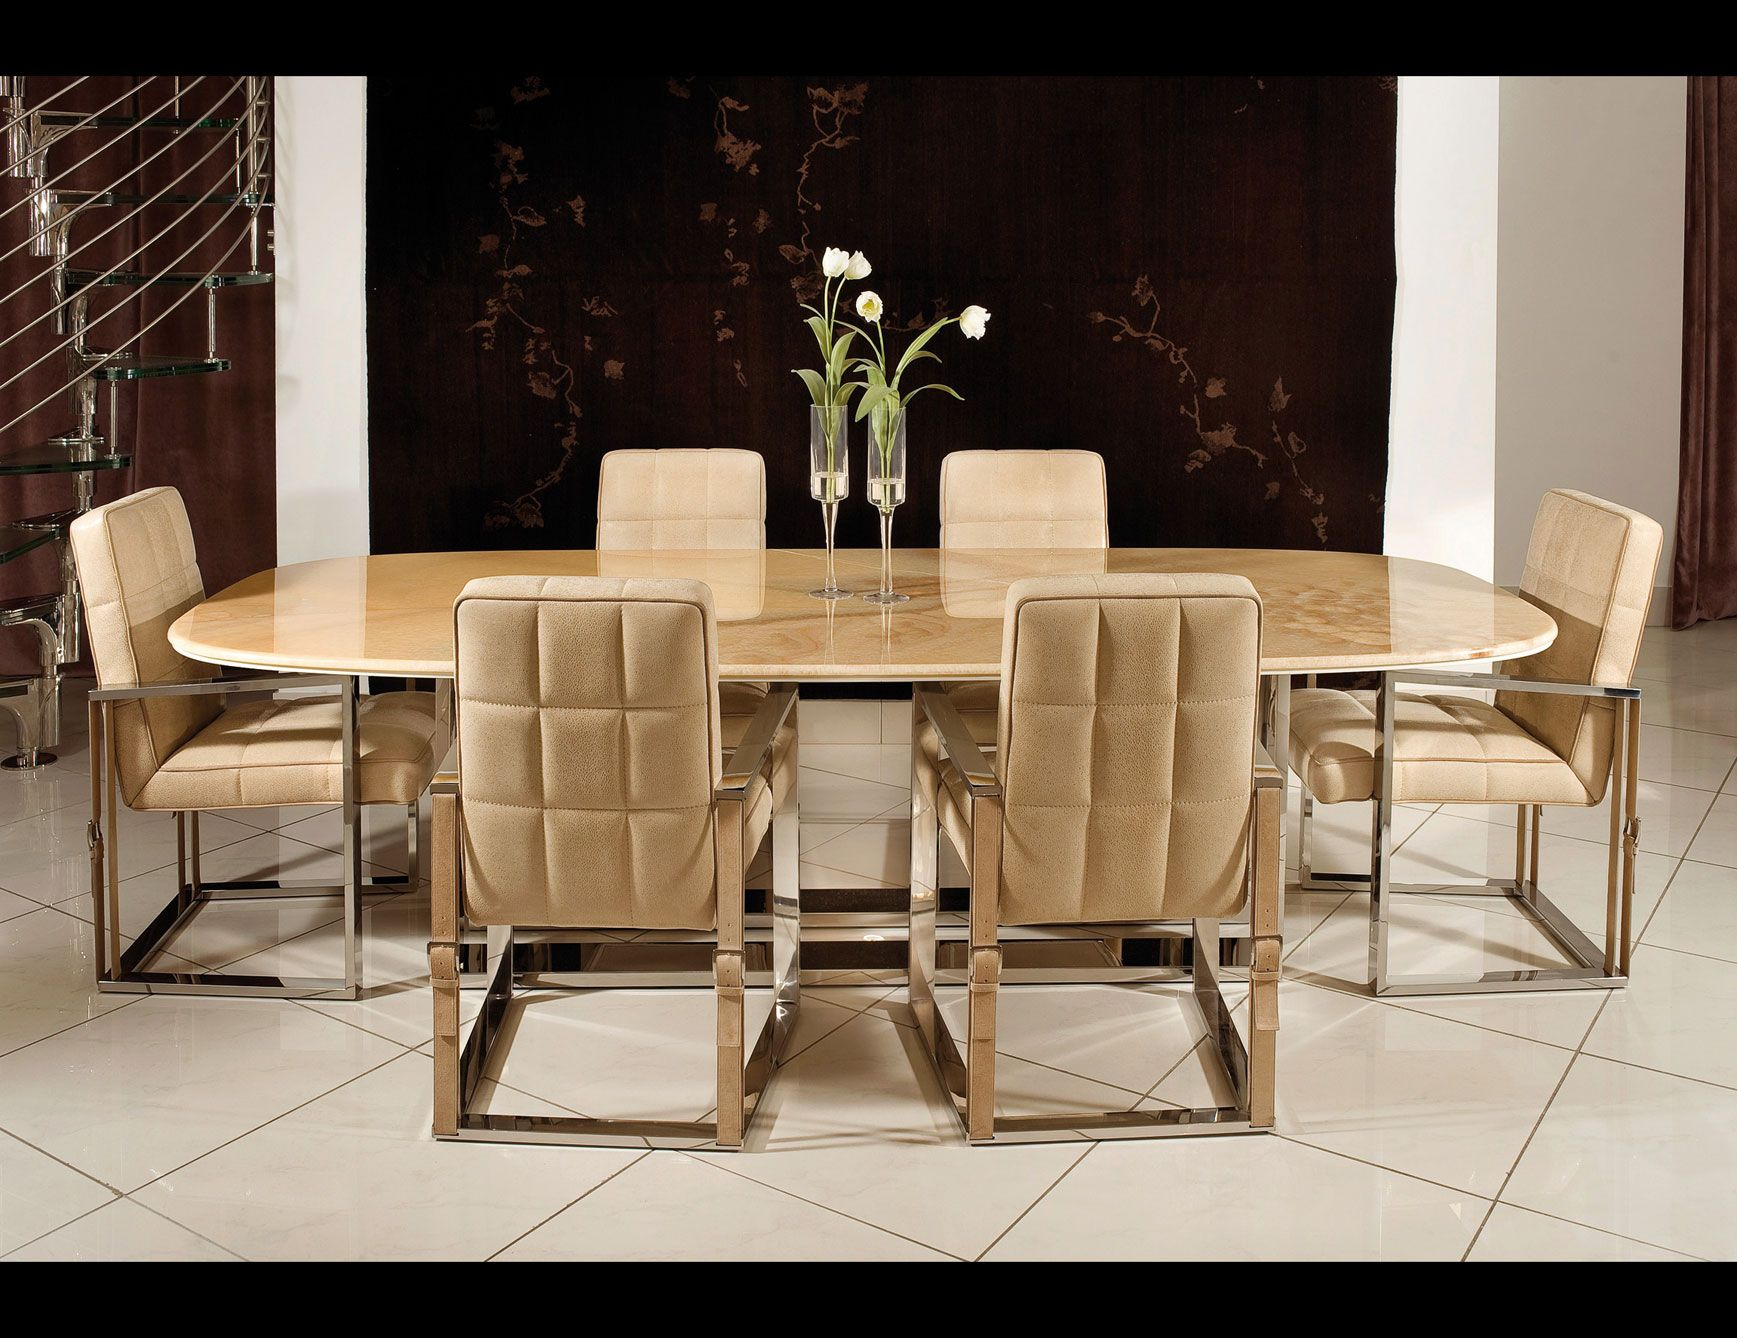 Contemporary Italian Dining Room Furniture Amazing Ipe Cavalli  Google Search  In_Stl  Italian Contemporary Inspiration